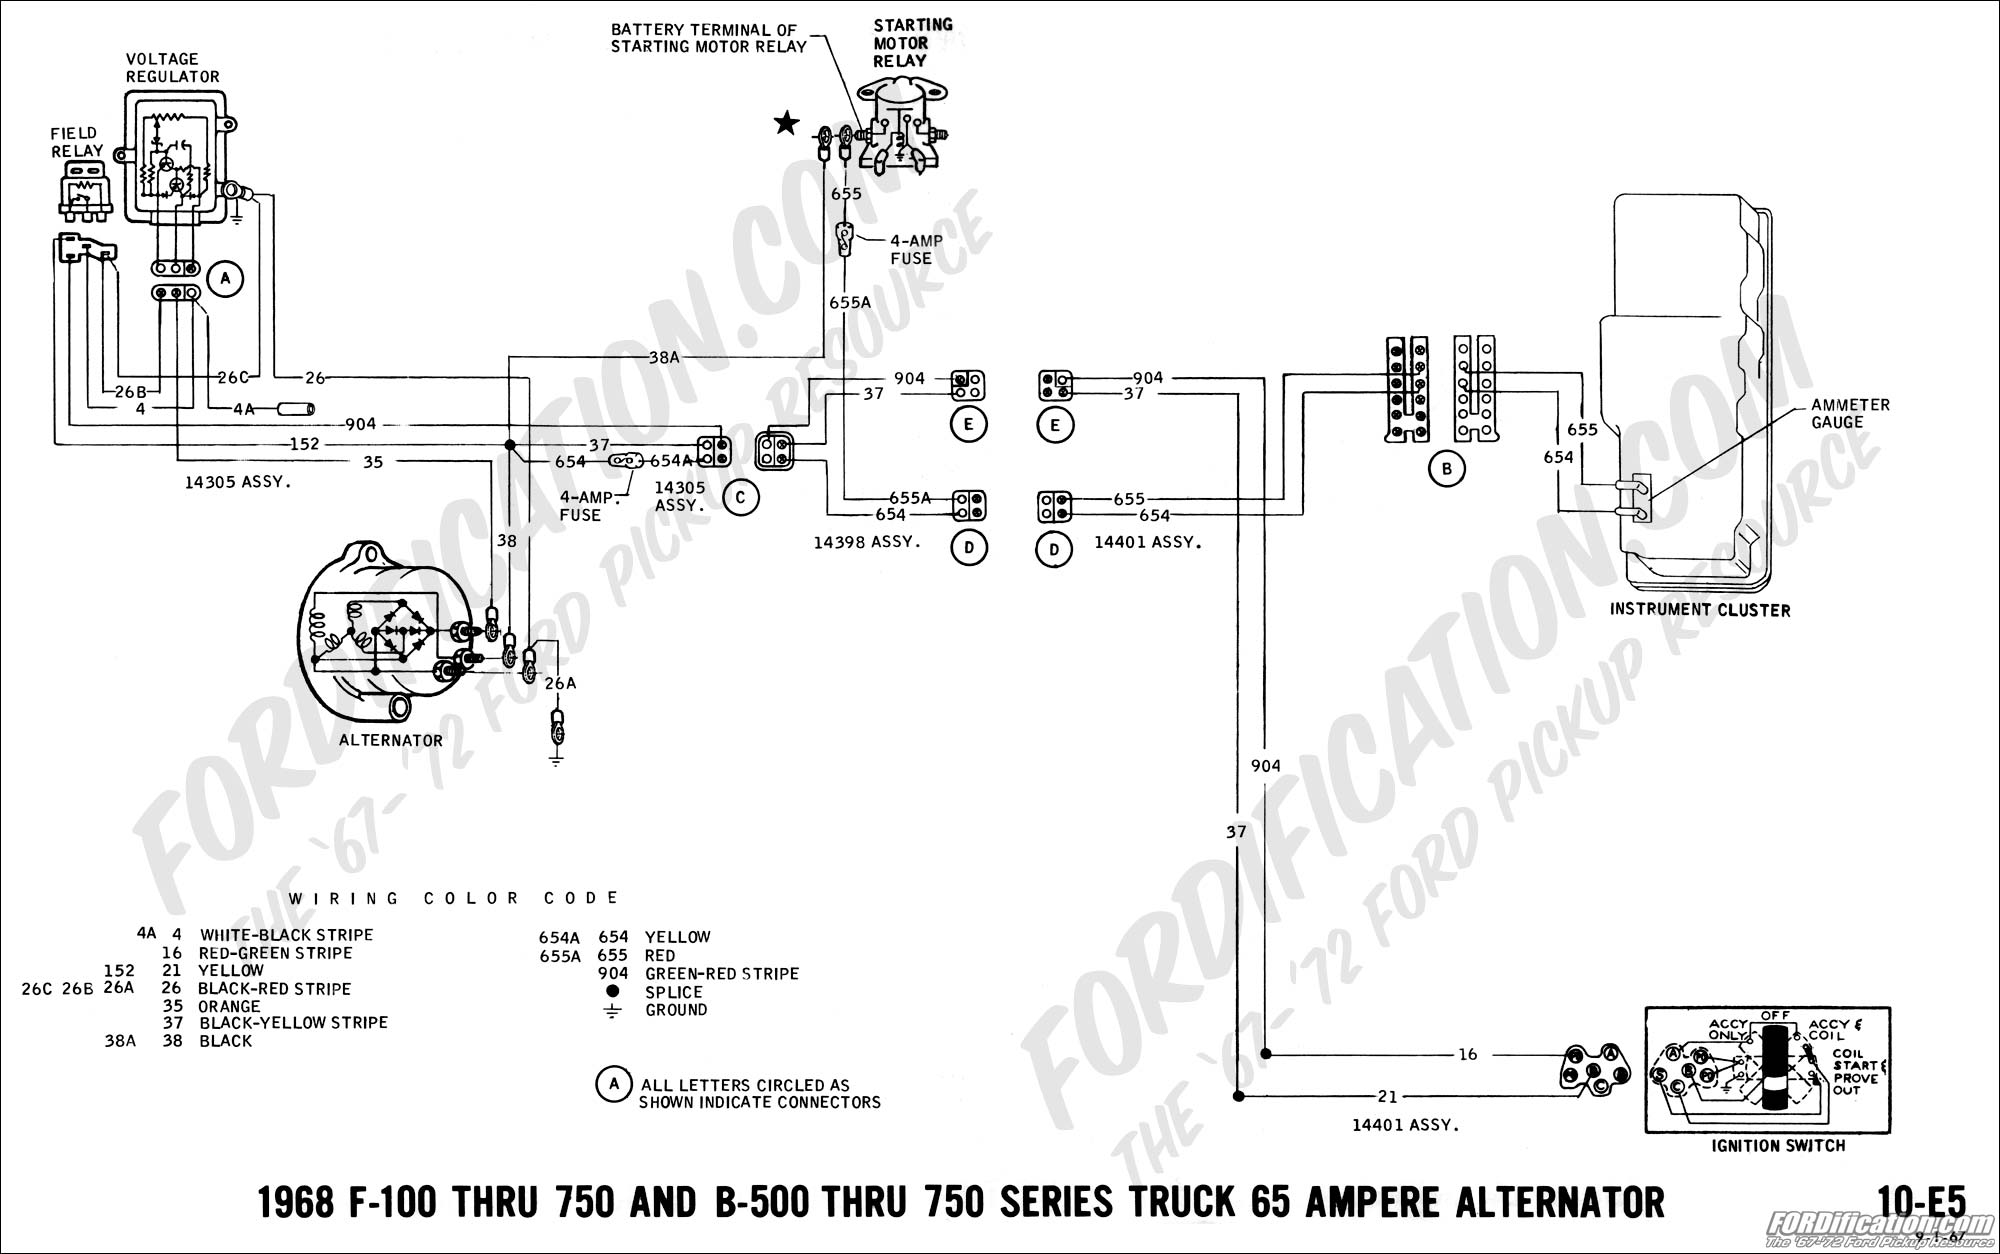 68 07 ford truck technical drawings and schematics section h wiring 1970 ford wiring diagram at soozxer.org